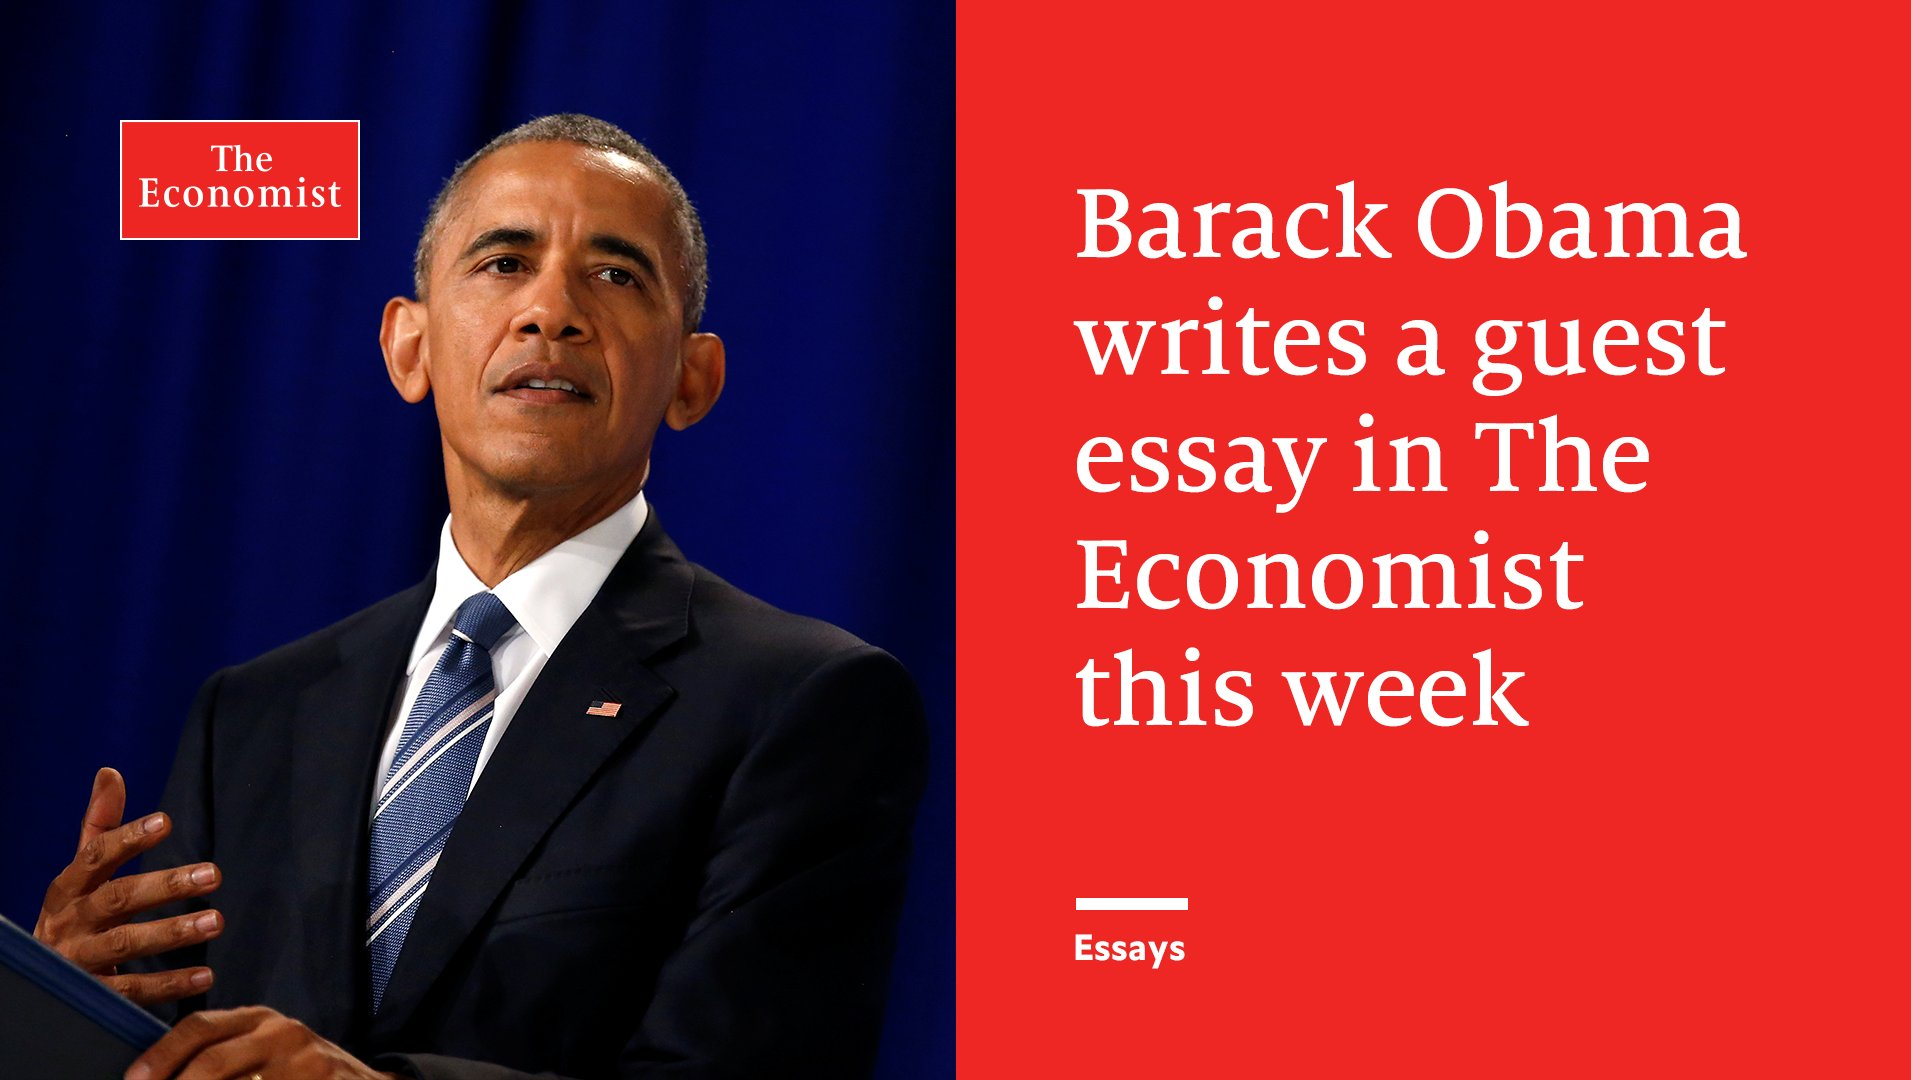 essay about obama presidency When president obama was elected, he came to office with a mandate to resolve a number of ongoing problems in the united states the path of the wars in iraq and afghanistan and a deepening economic crisis were major issues with which obama was asked to contend.